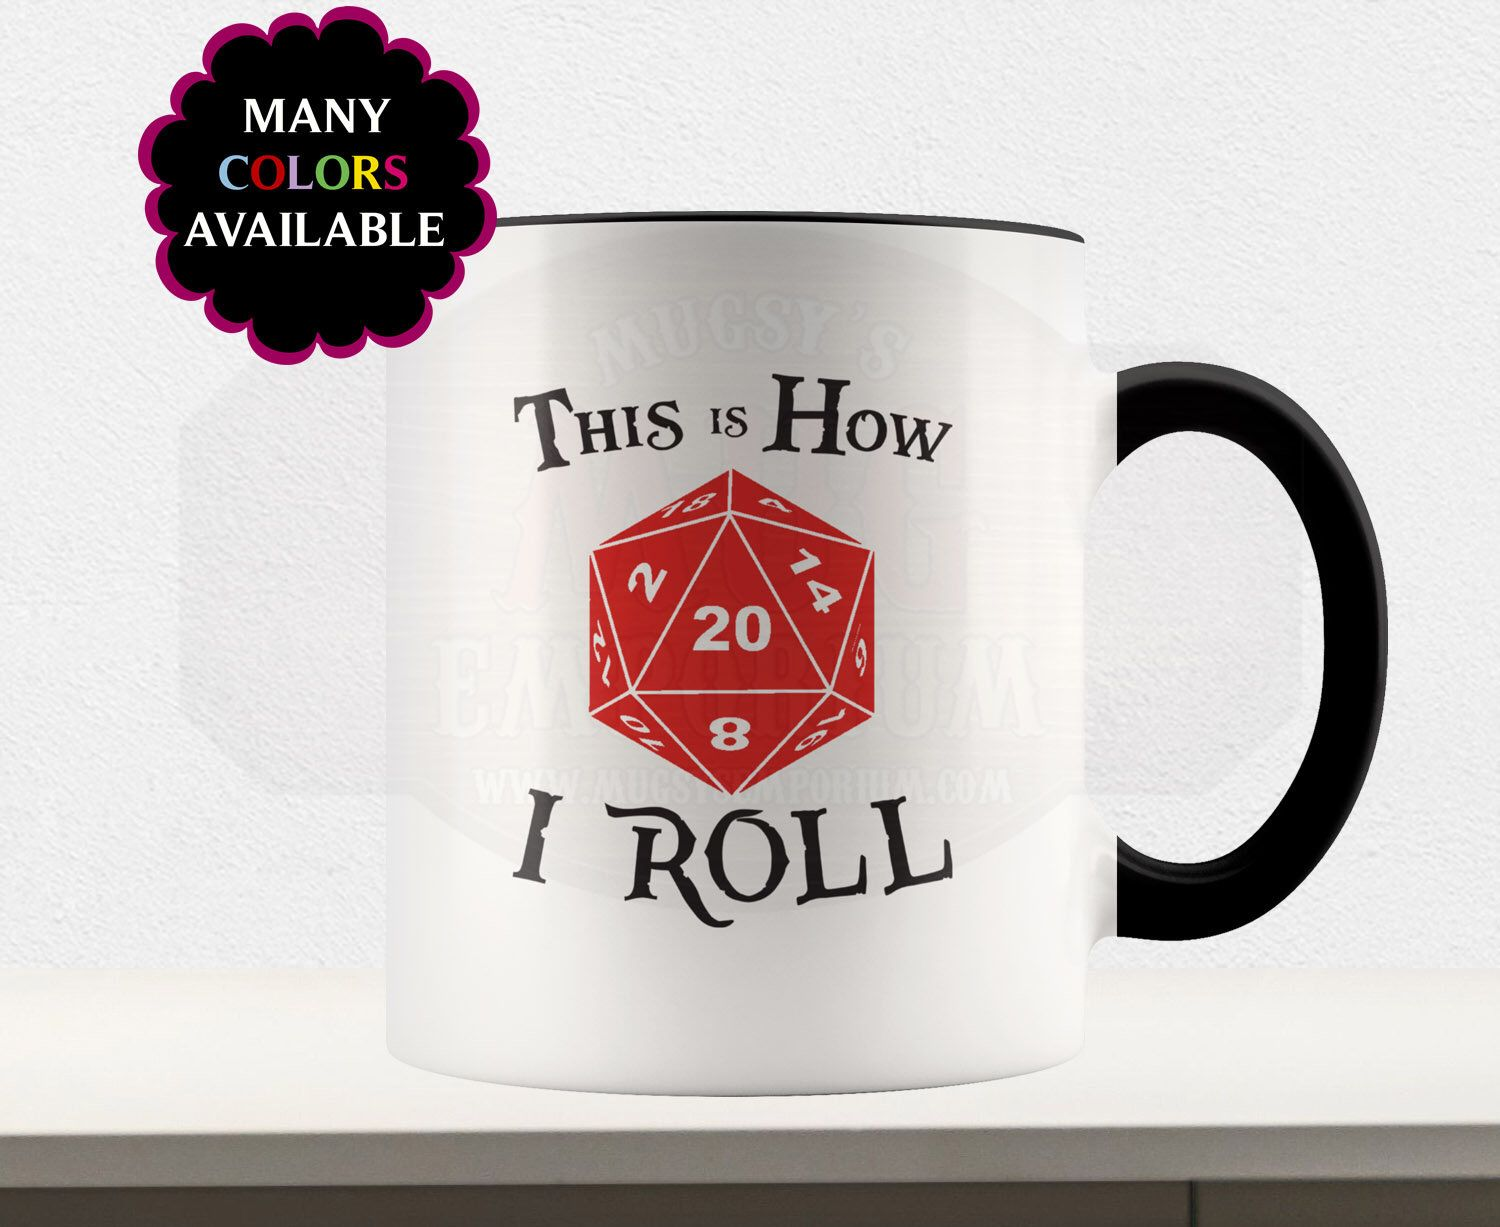 This is How I Roll D&D Custom Mug, DnD, RPG, Dungeons and Dragons, Gaming Mug, D20, Tea cup, Coffee mug, Dice Bag, Gamer Gift, Geek Mug #custommugs